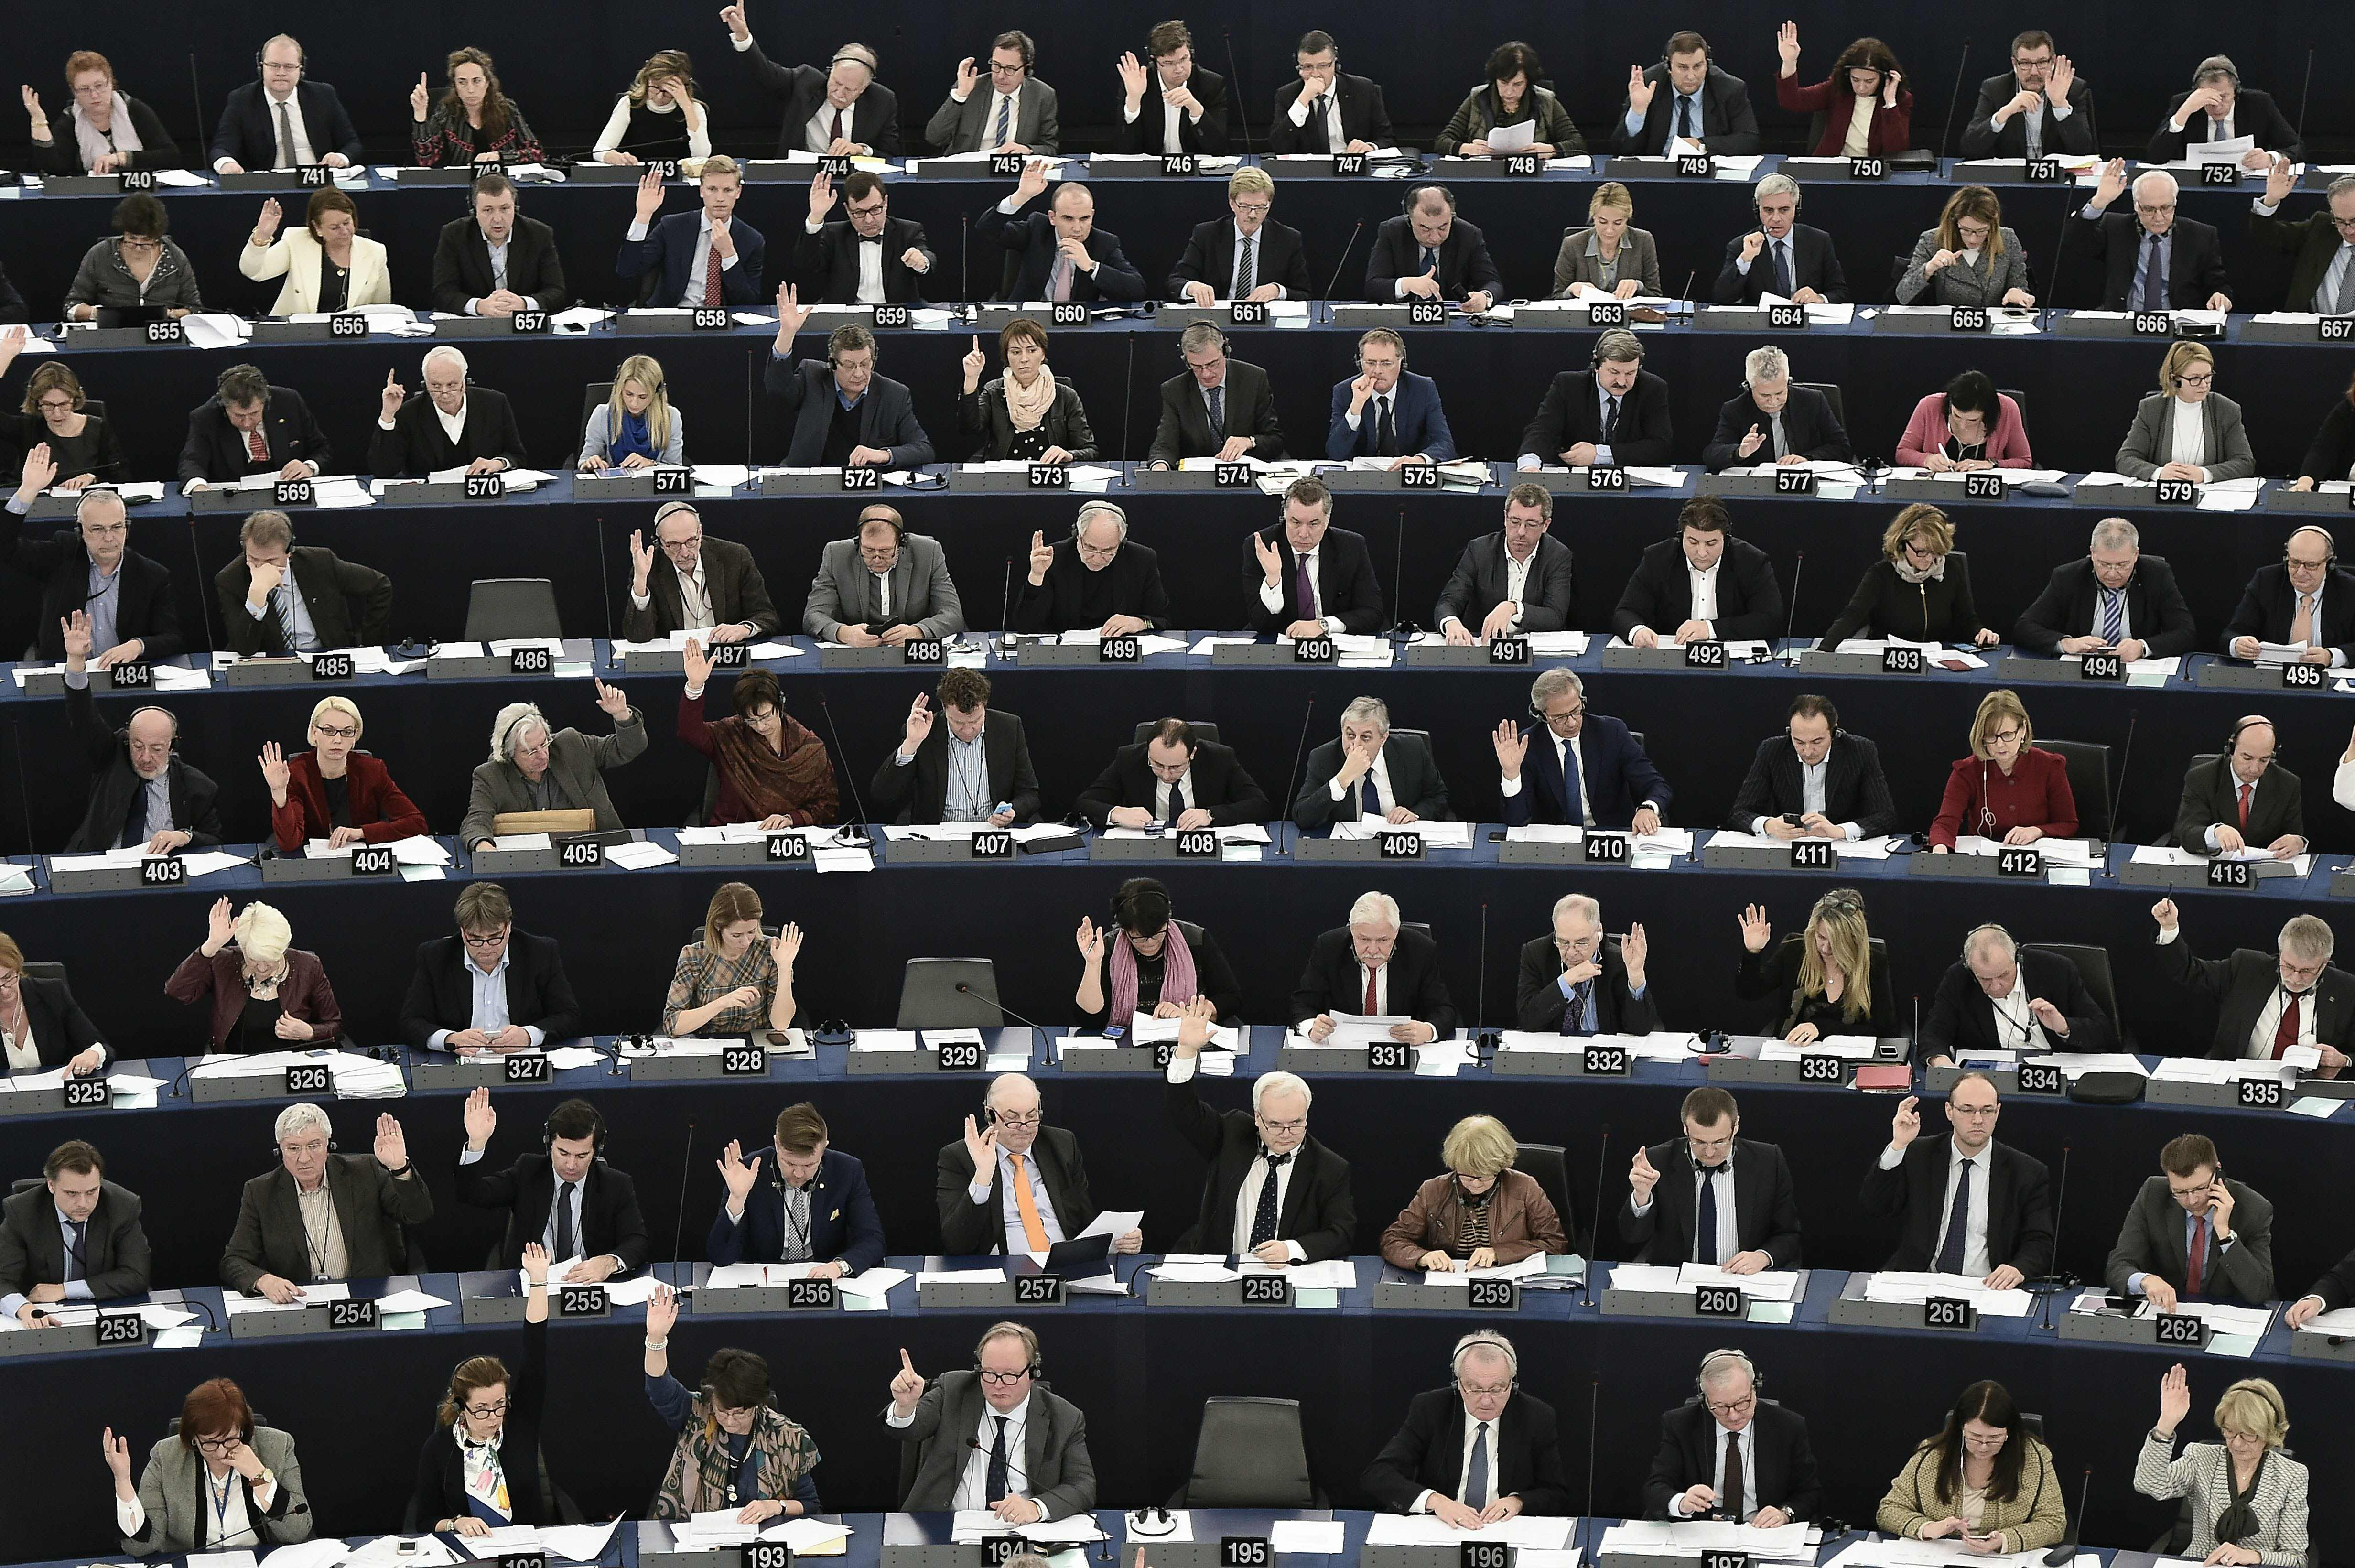 Members of the European Parliament take ...Members of the European Parliament take part in a voting session at the European Parliament in Strasbourg, eastern France, on March 8, 2016.  / AFP / FREDERICK FLORINFREDERICK FLORIN/AFP/Getty Images